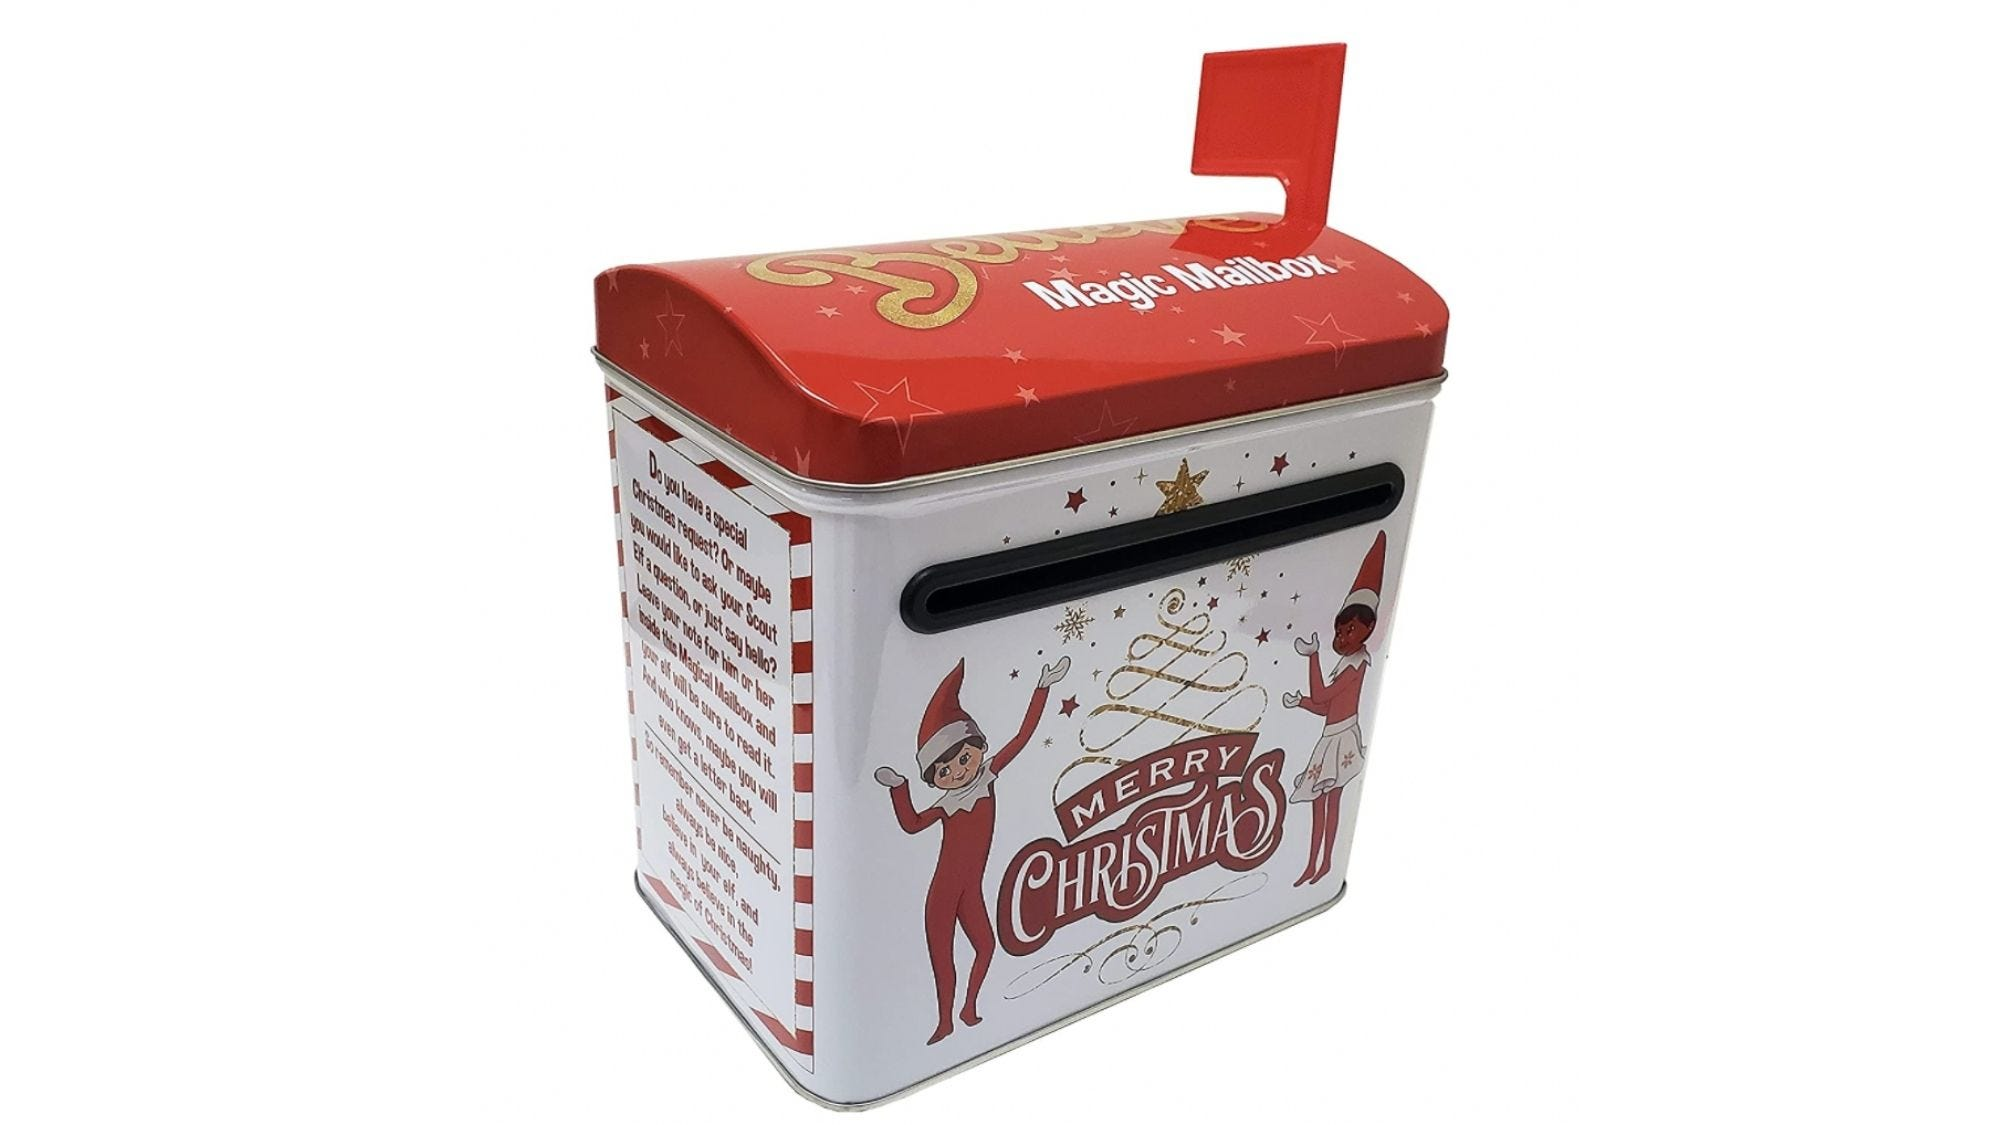 Just what you and your elf need for daily correspondence with Santa.